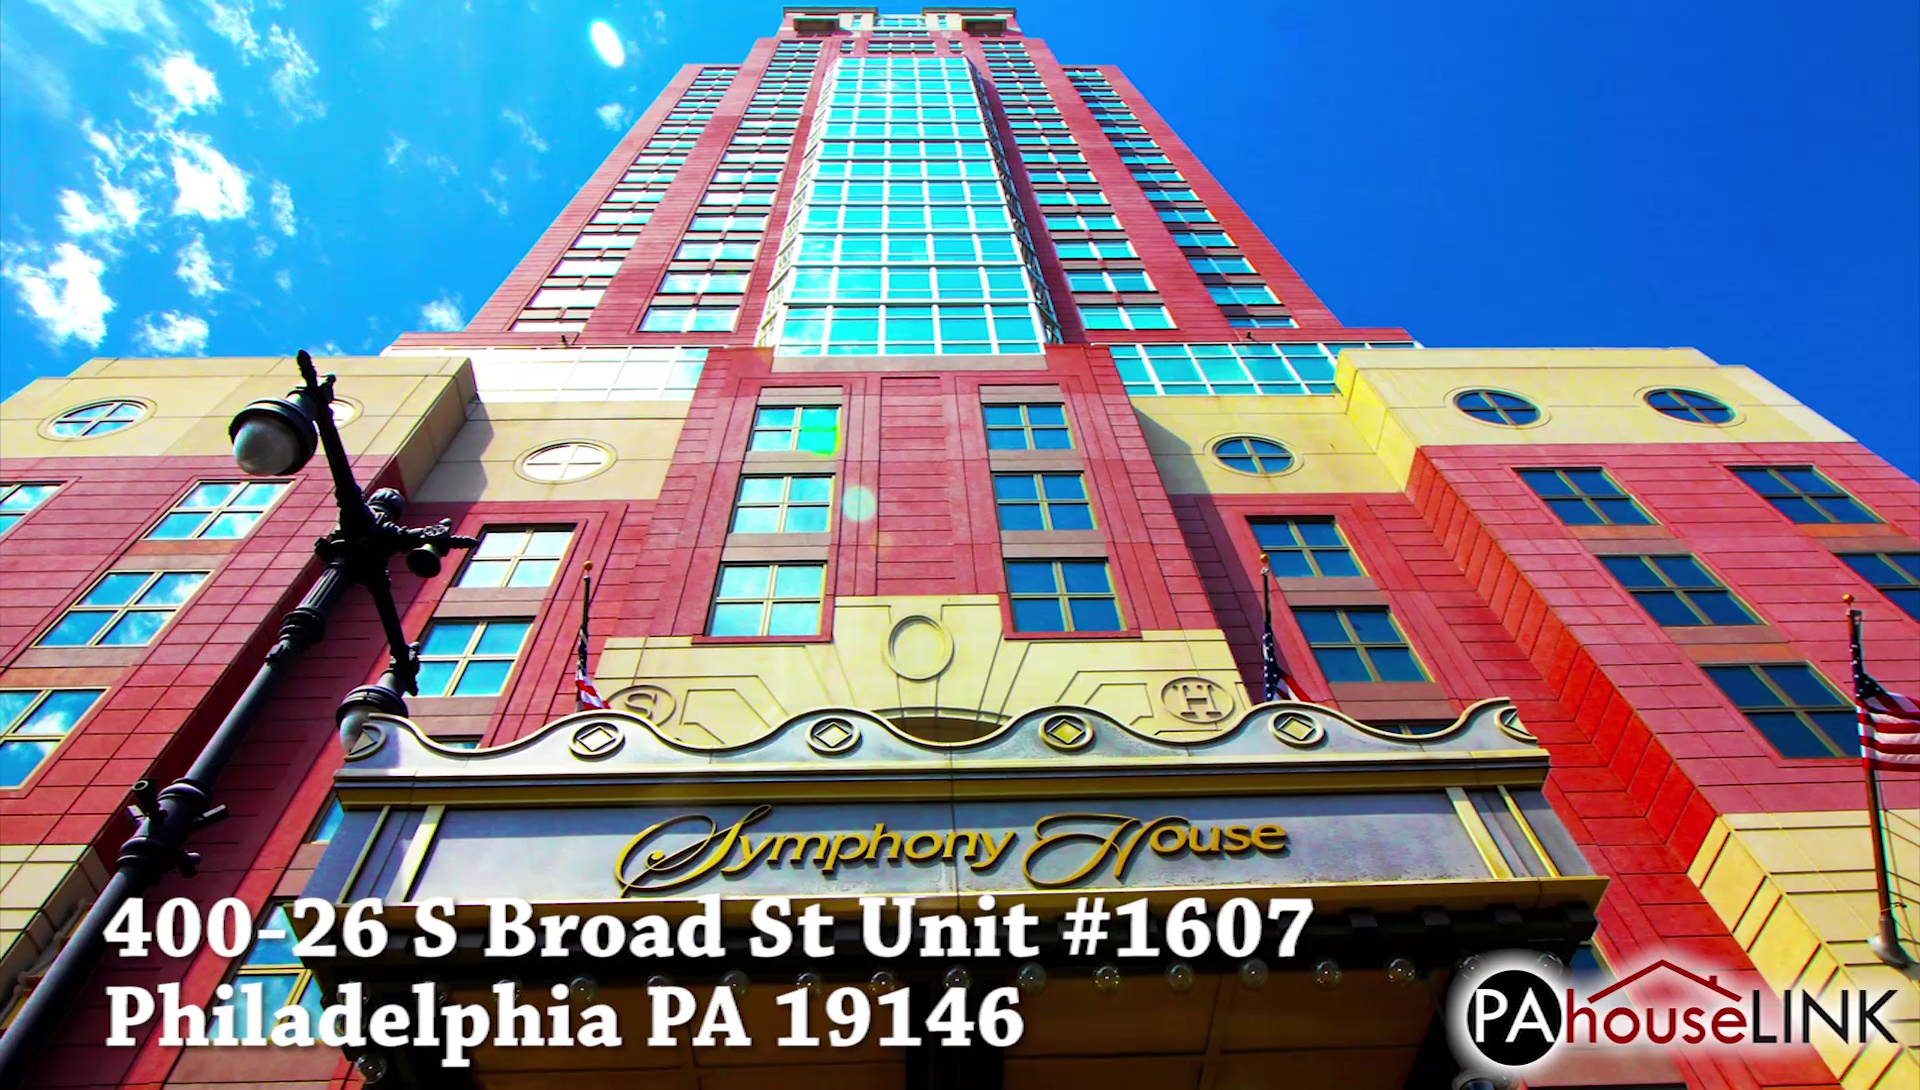 400 26 S Broad St Unit #1607 Philadelphia PA 19146 | Coming Soon Foreclosure Properties Philadelphia PA 19146